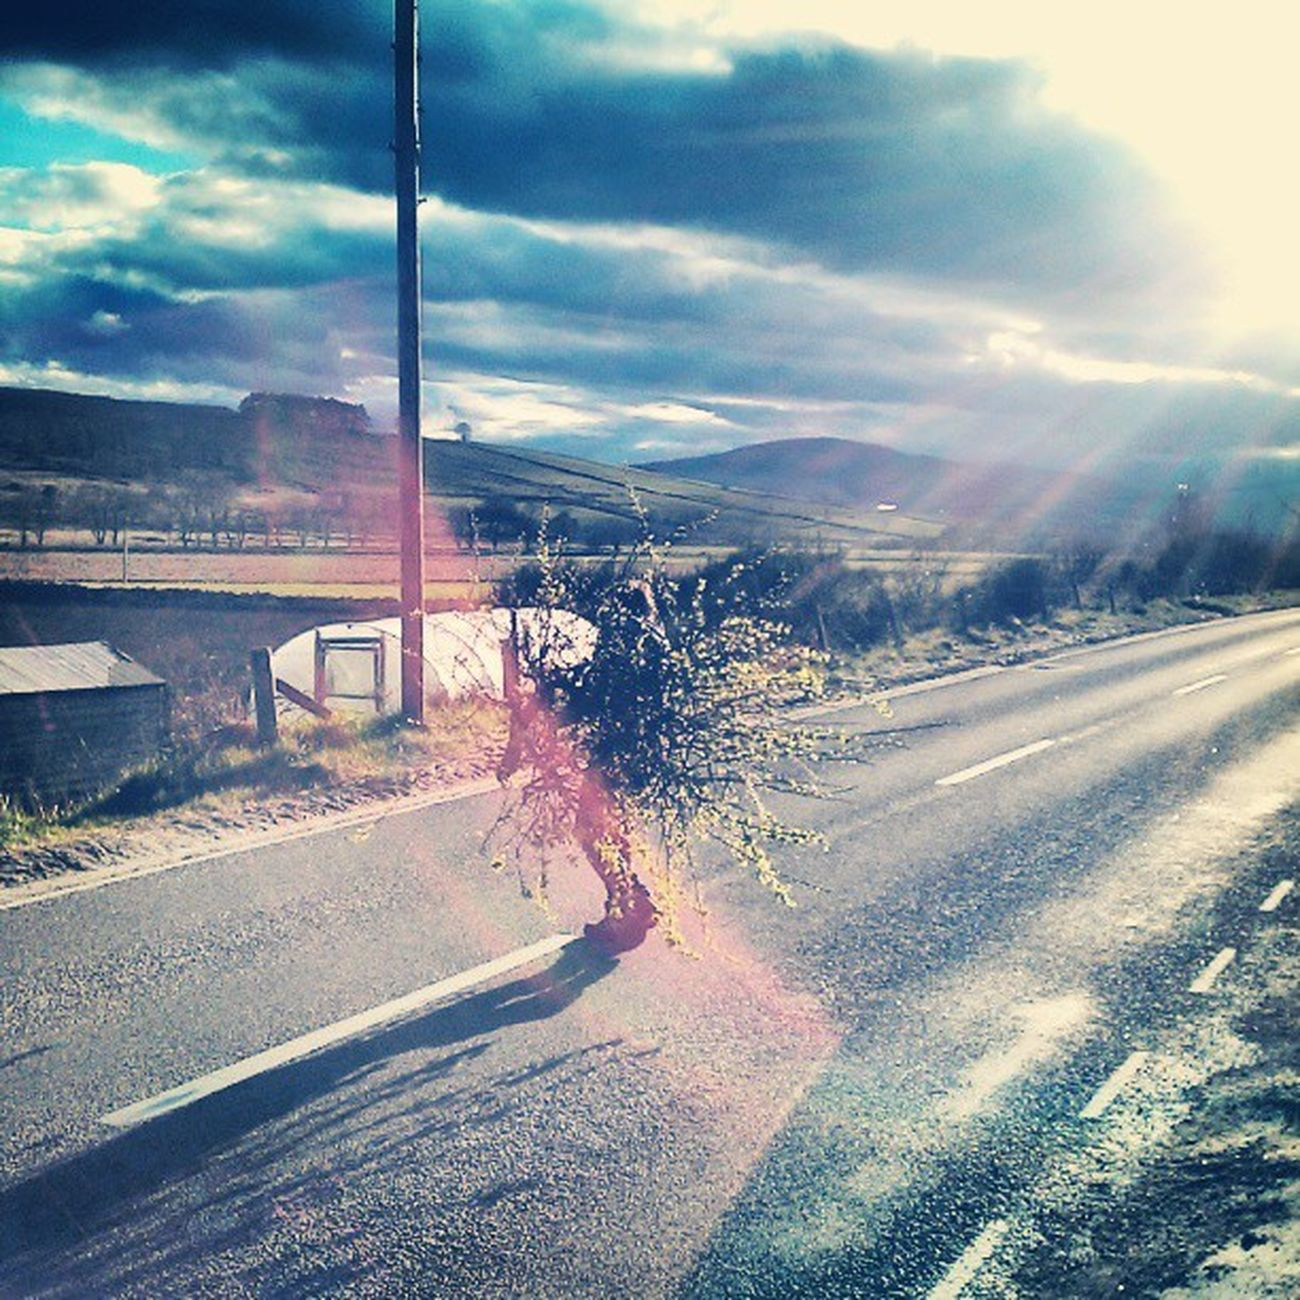 Adz disguised as a bush :) Mycamerastories Bush Disguise Ssshhh crossingtheroad lol branches sunlight lensflare myhusband road igscotland instascotland